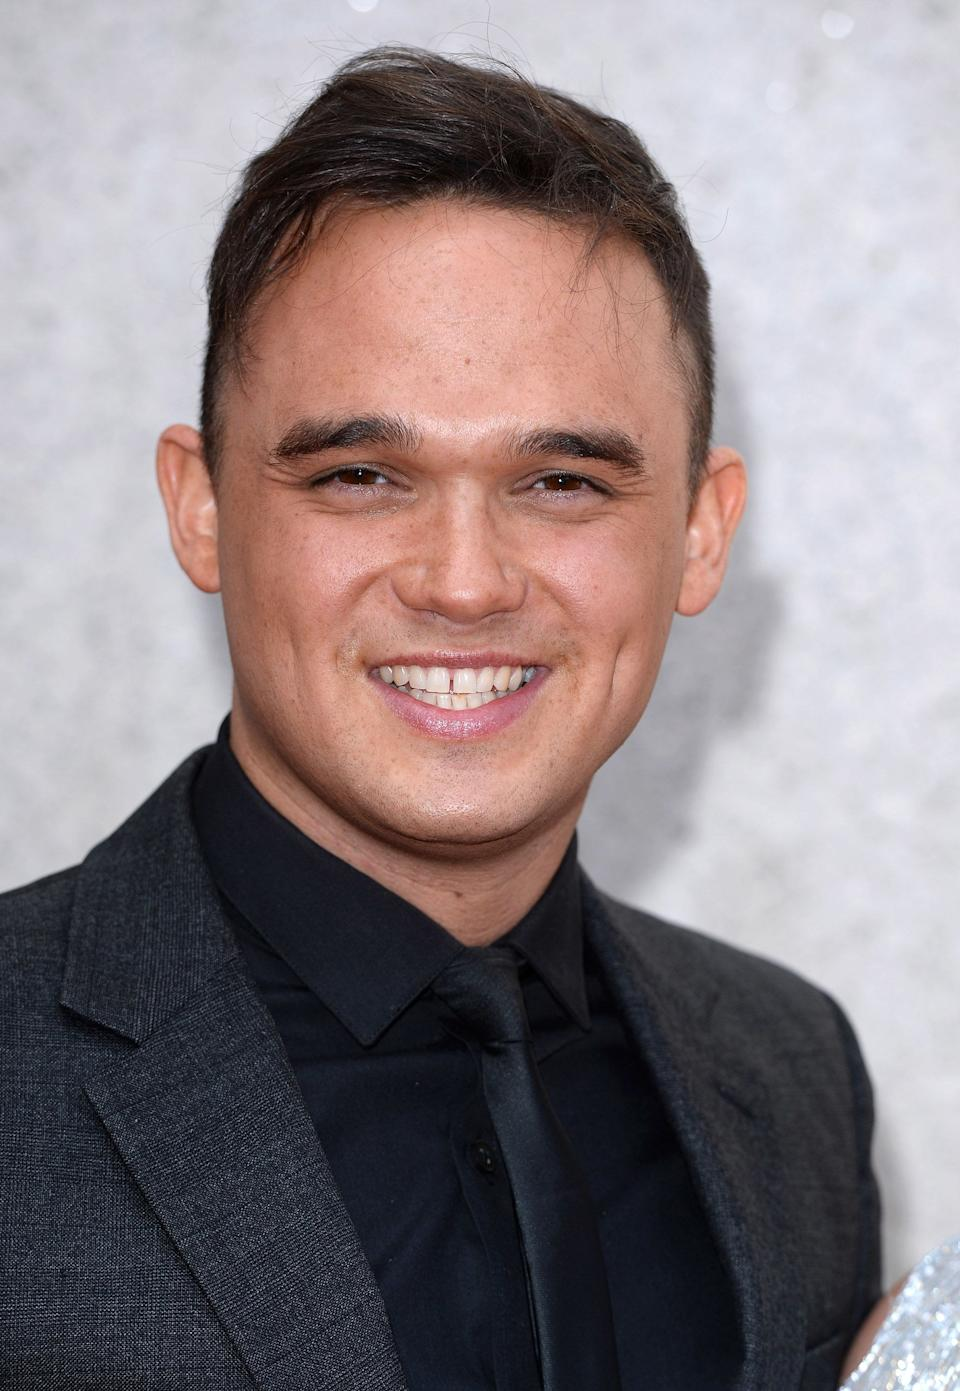 Having first won the nation's hearts as a singer on Pop Idol, Gareth has appeared on Dancing On Ice - and its follow-up All Stars special - as well as joining boyband 5th Story in the second series of The Big Reunion.<br /><br />He started young, though, appearing as a contestant on Steps' talent show Steps To The Stars as a child.